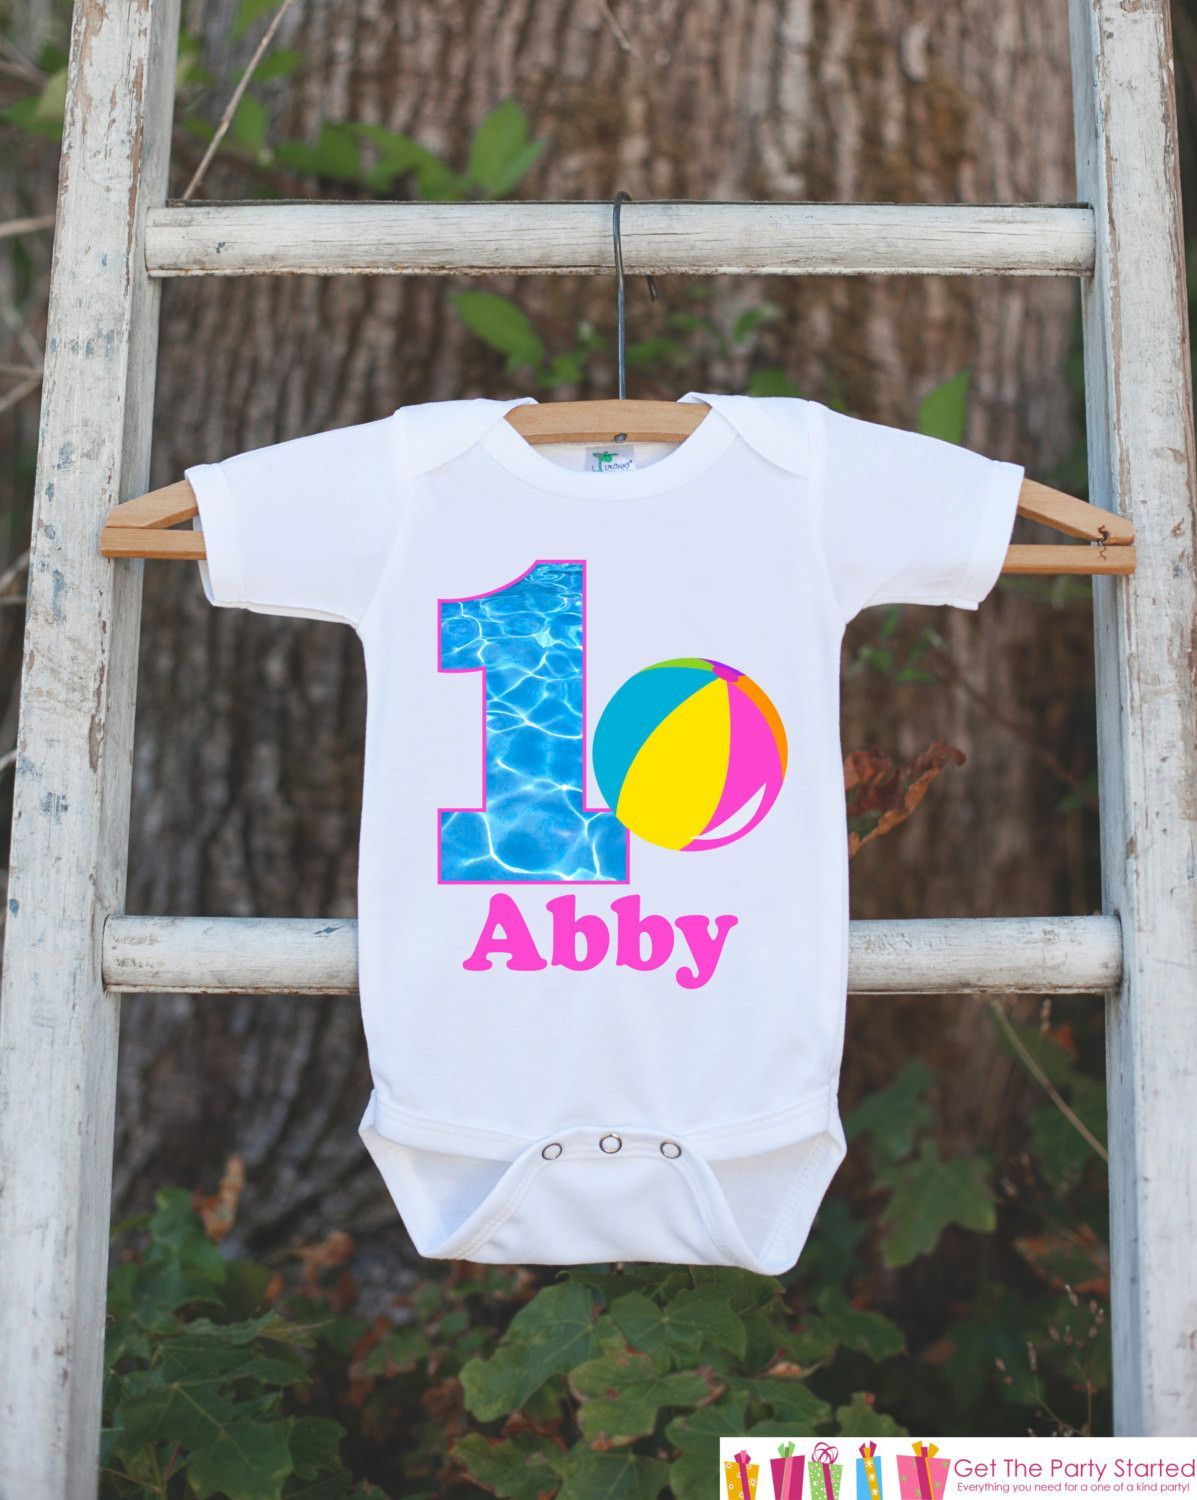 Pool Party Onepiece Bodysuit - First Birthday Bodysuit - Personalized Pool  Party Outfit with Baby Girl s Name and Age and Beach Ball 8943562c715b